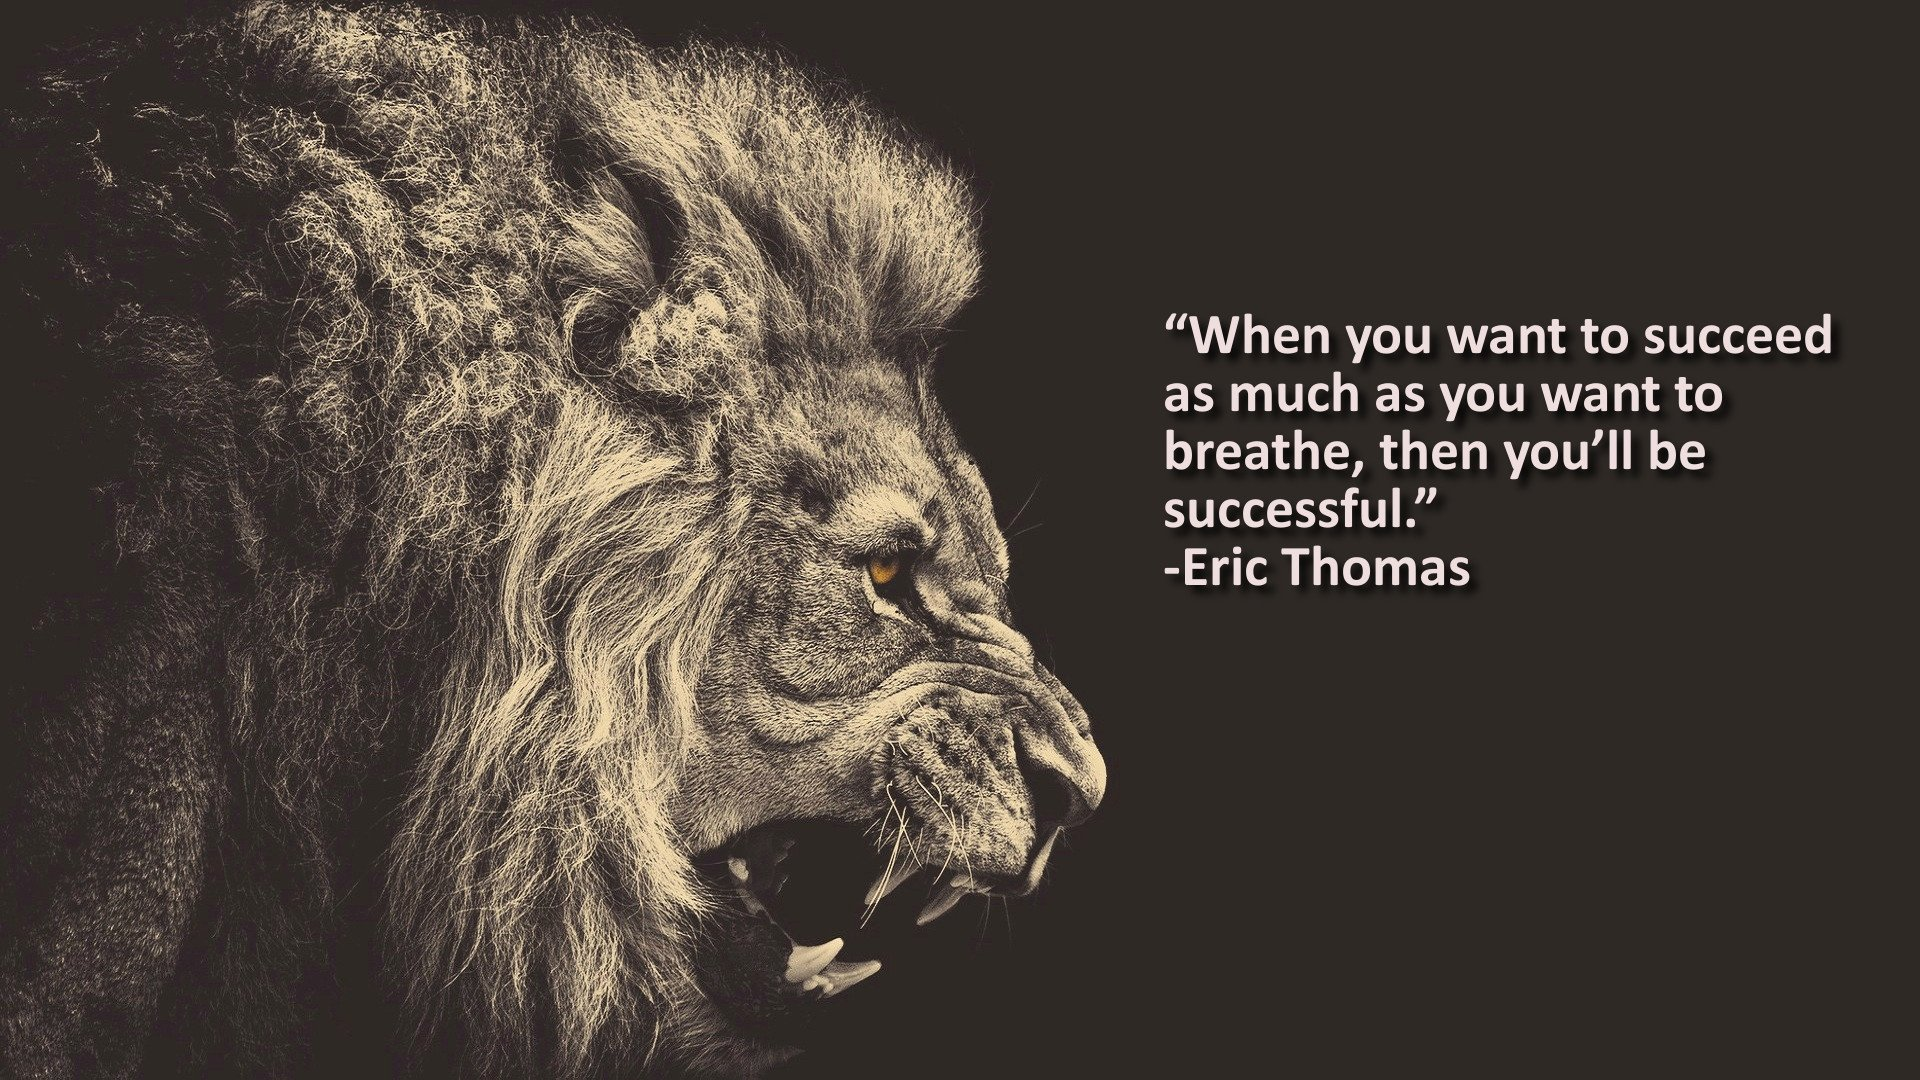 """When You Want To Succeed As Much As You Want To Breathe, Then You'll Be Successful."" – Eric Thomas [1920 x 1080]"